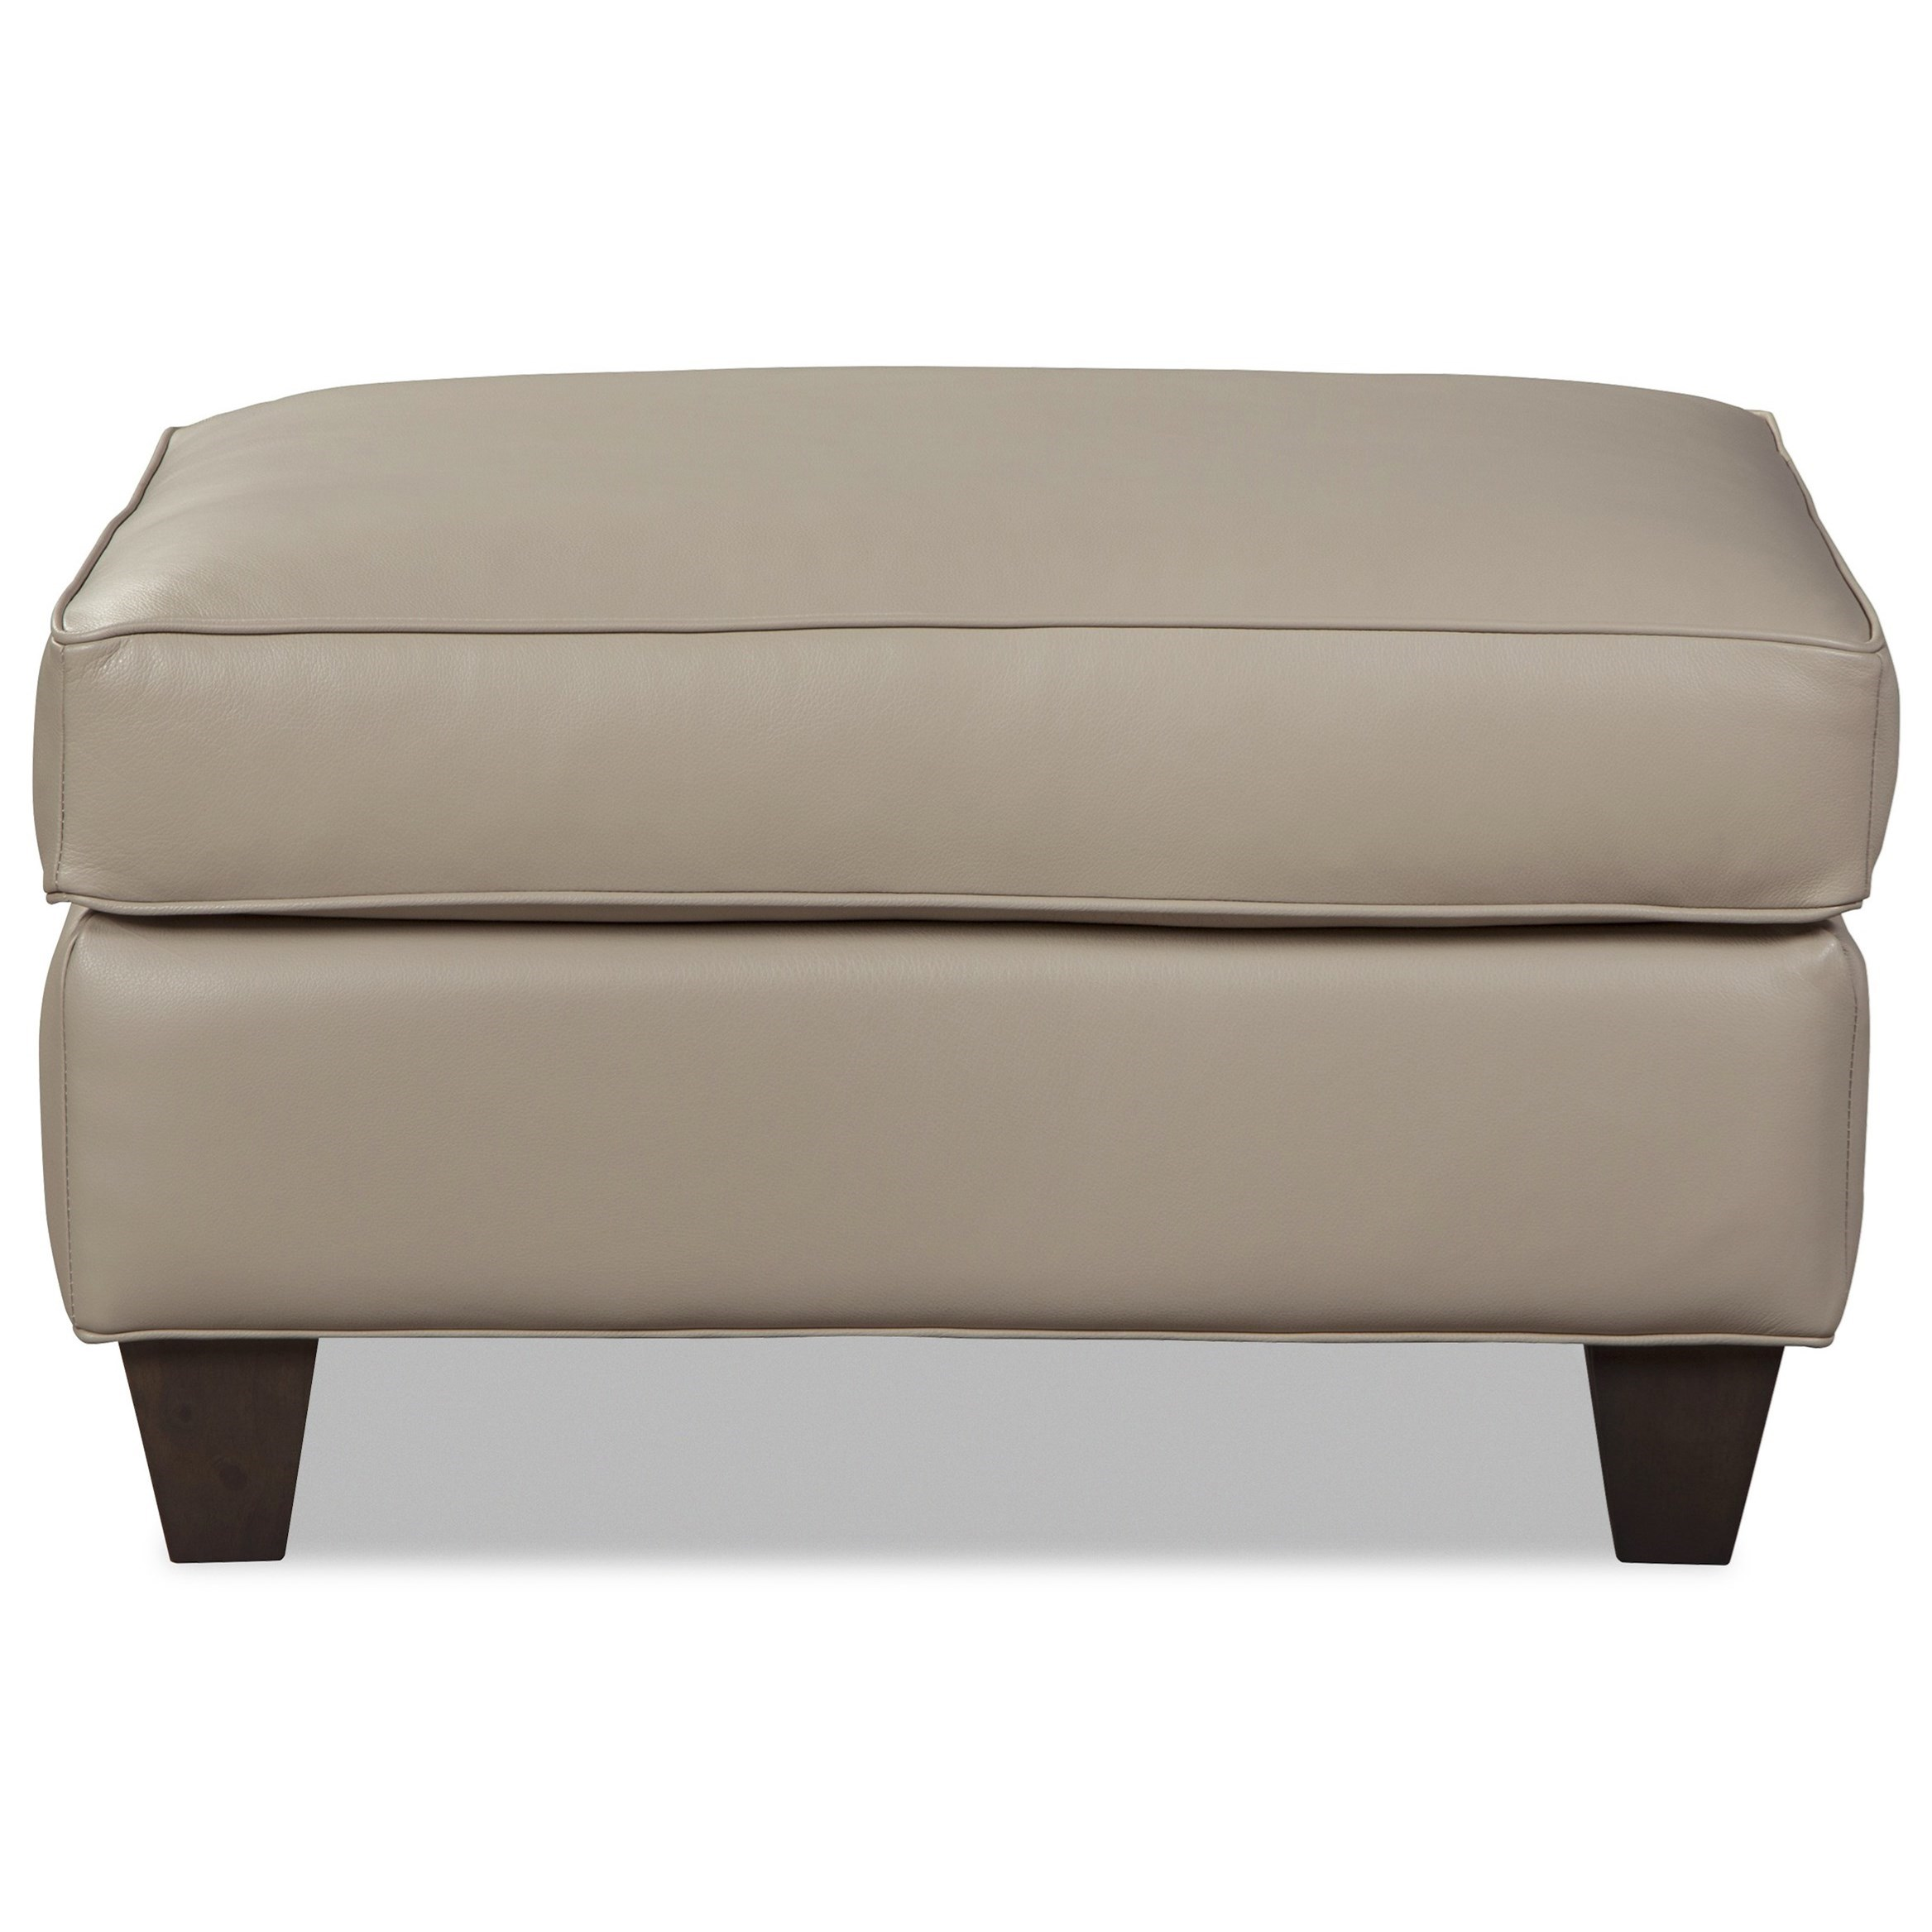 L794150 Ottoman by Hickory Craft at Godby Home Furnishings